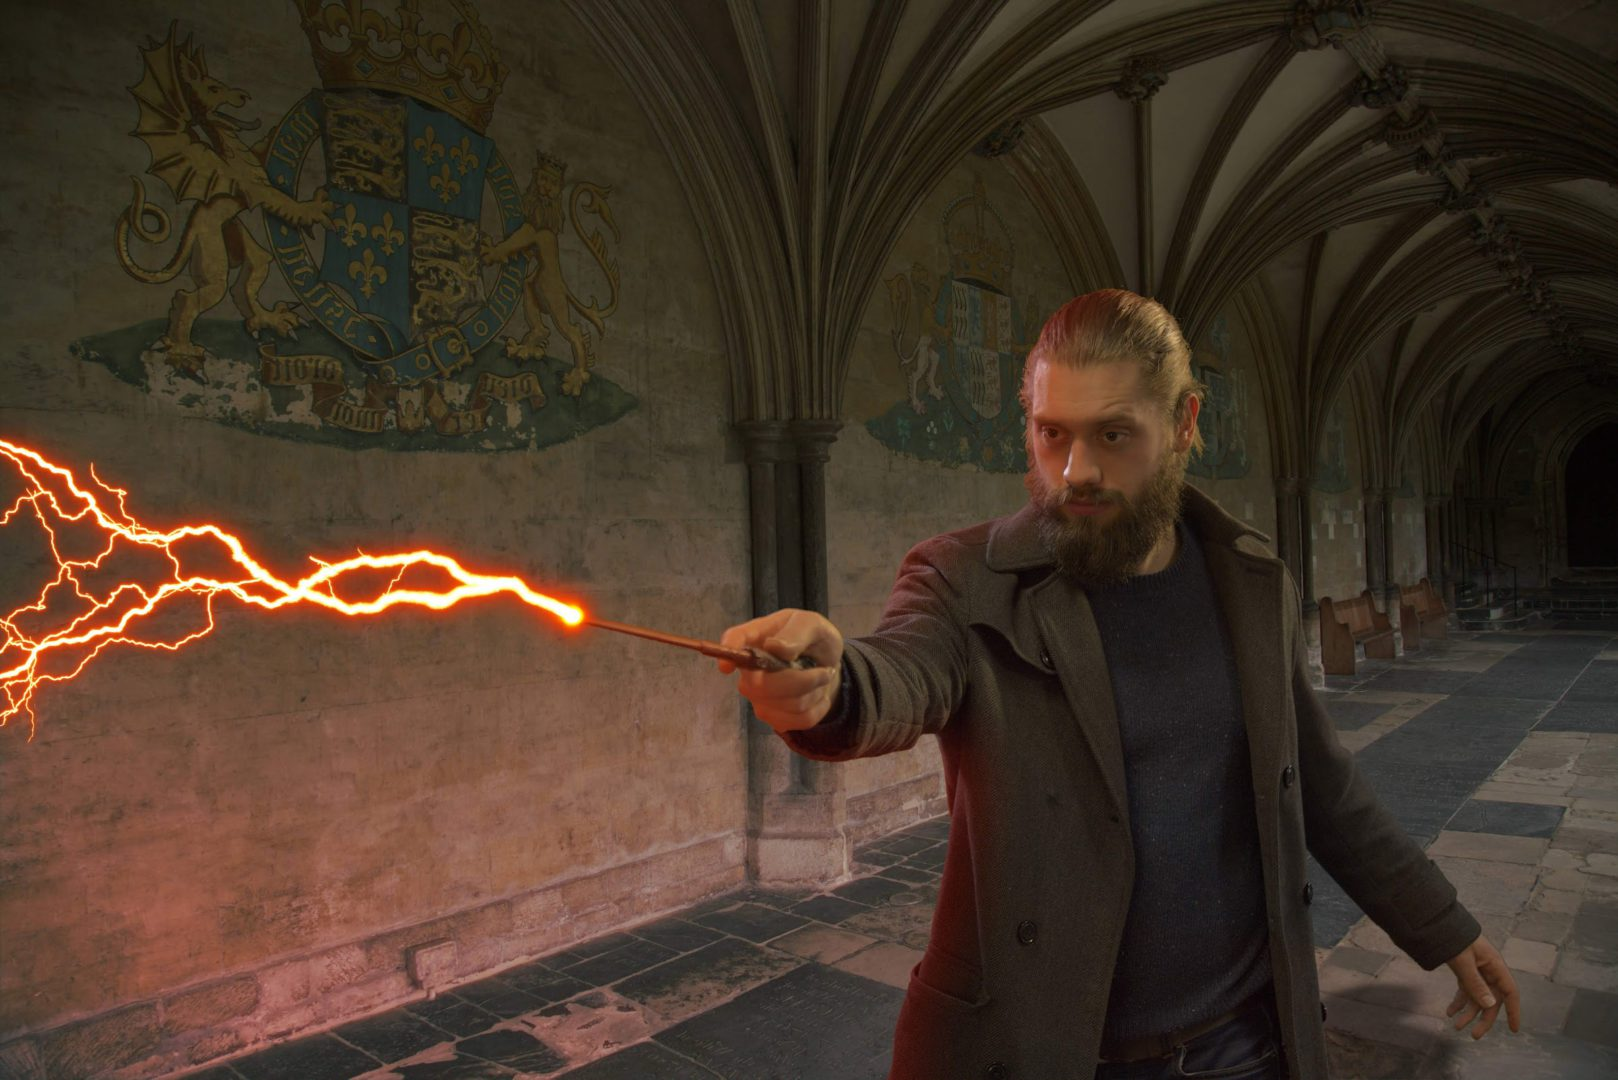 New glow effect in Imerge Pro 4 - Harry Potter-style wizard effects